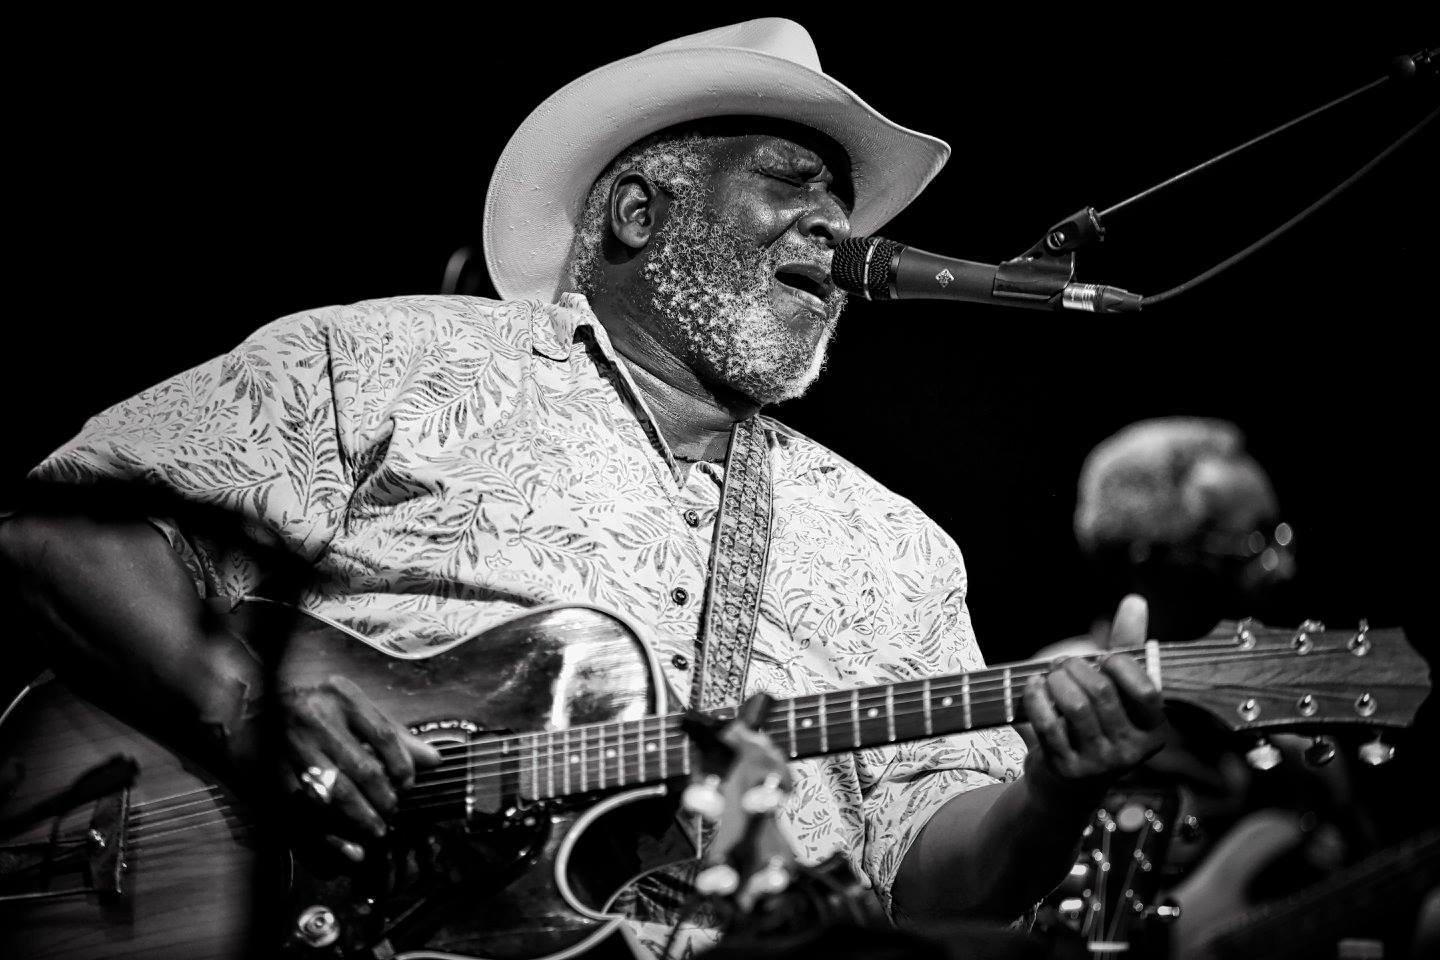 Taj Mahal on Working with Howlin' Wolf, Muddy Waters, the Rolling Stones, and More